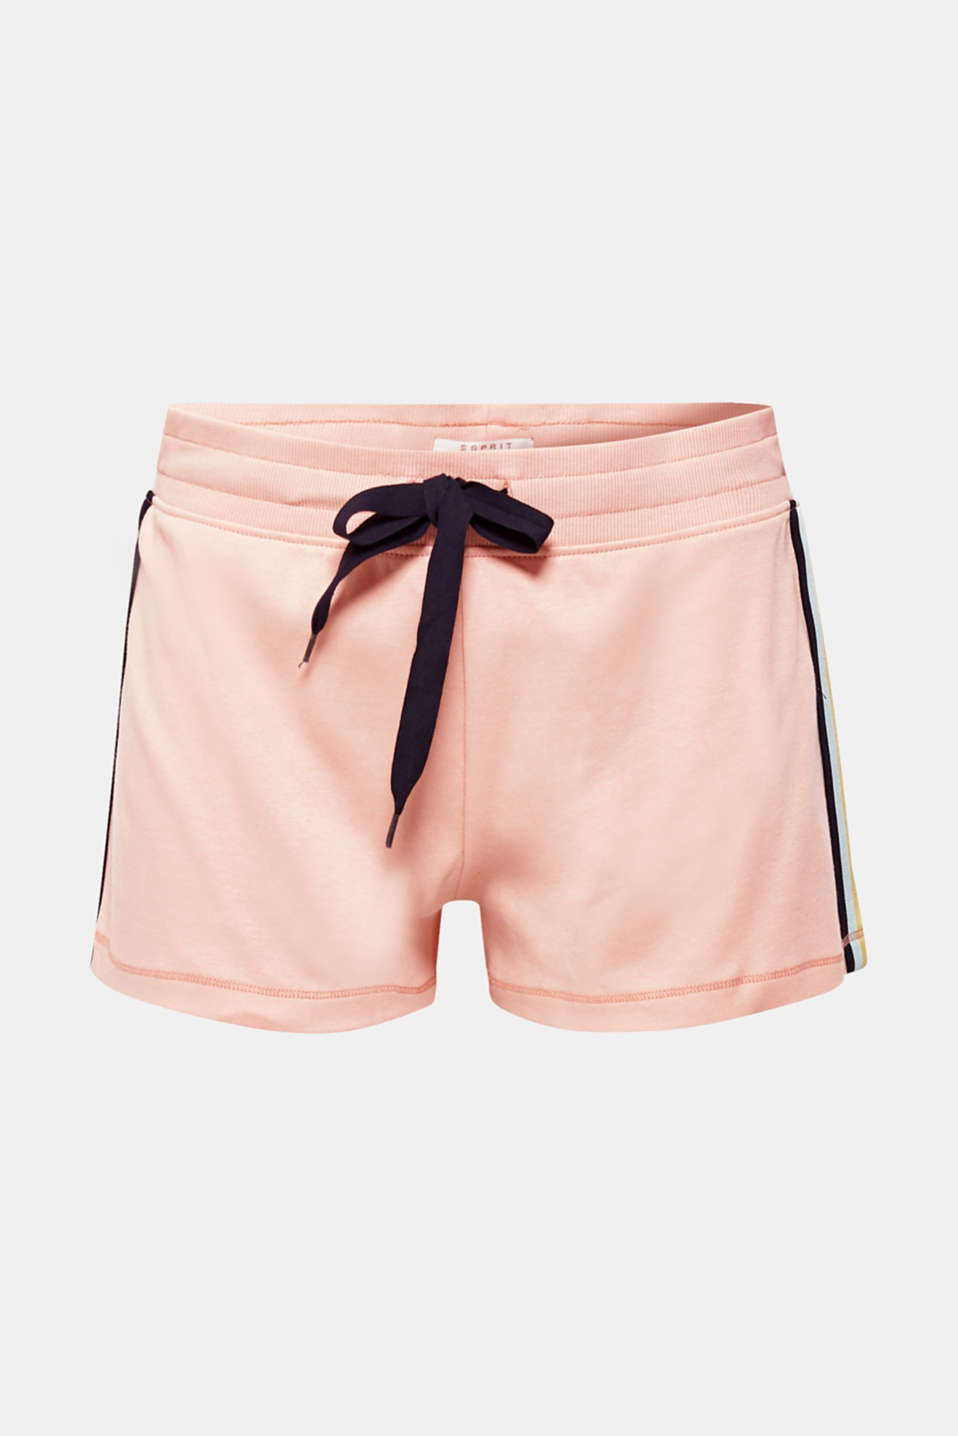 Jersey shorts with racing stripes, 100% cotton, CORAL, detail image number 4